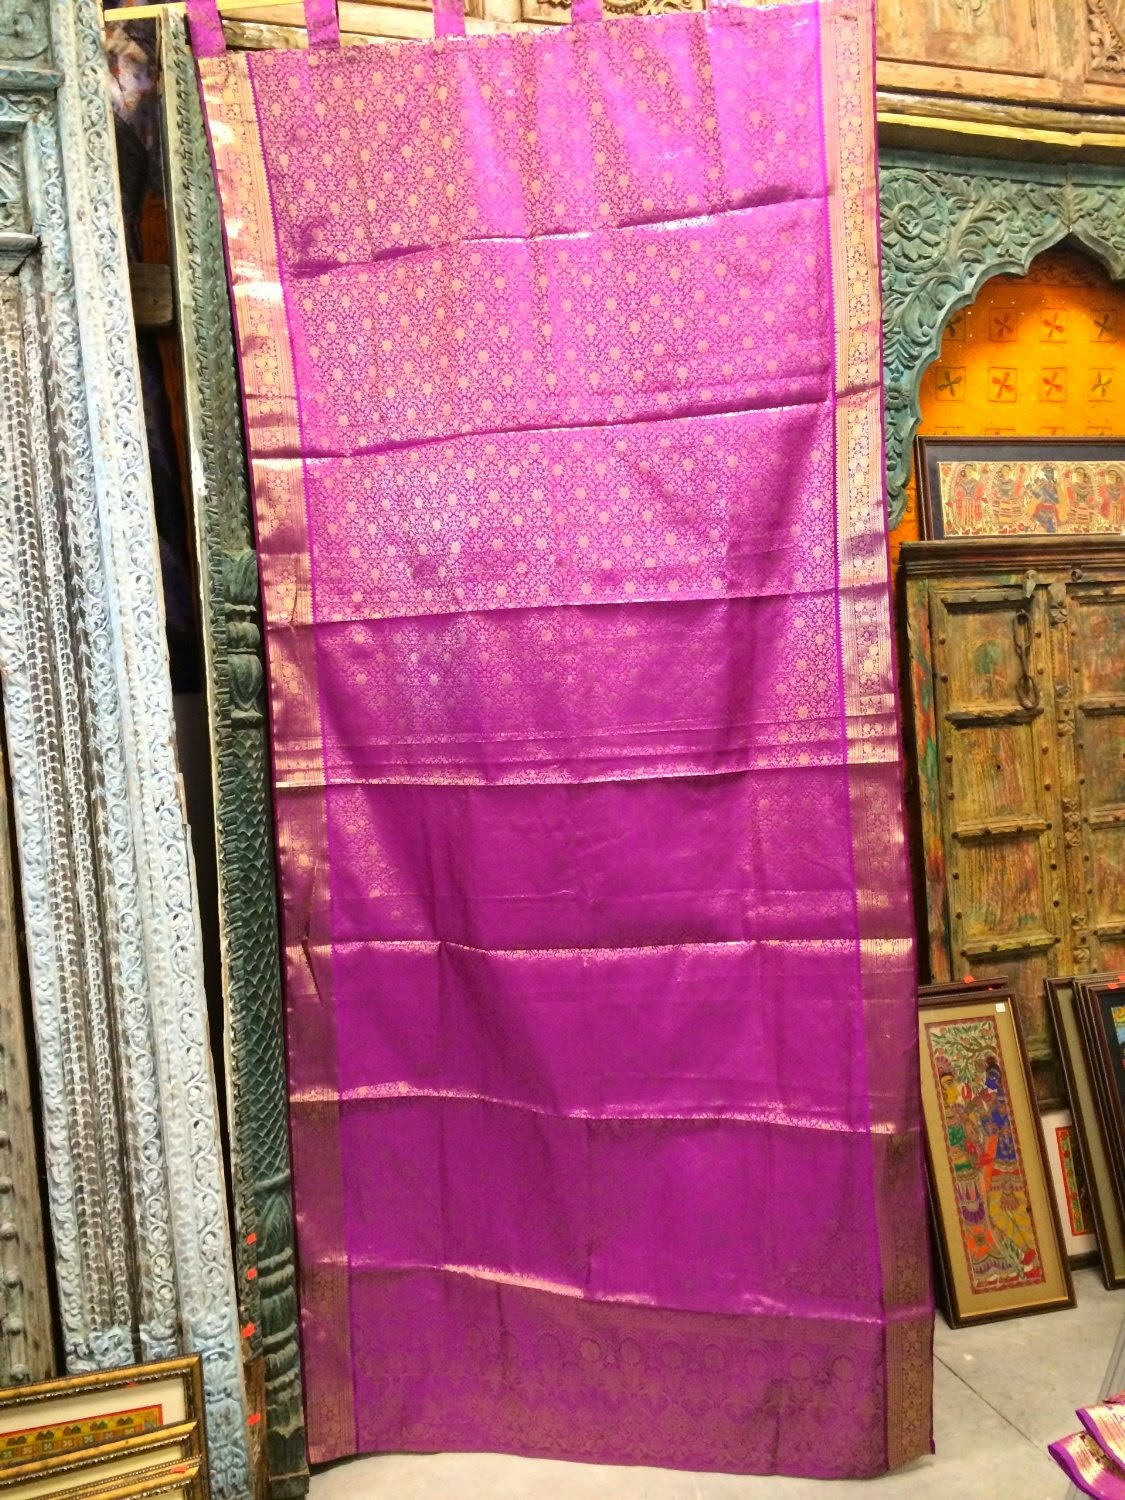 http://www.amazon.com/Curtains-Brocade-Drapes-Curtain-Dressing/dp/B00K5LDK2O/ref=sr_1_20?m=A1FLPADQPBV8TK&s=merchant-items&ie=UTF8&qid=1422957151&sr=1-20&keywords=sari+drapes